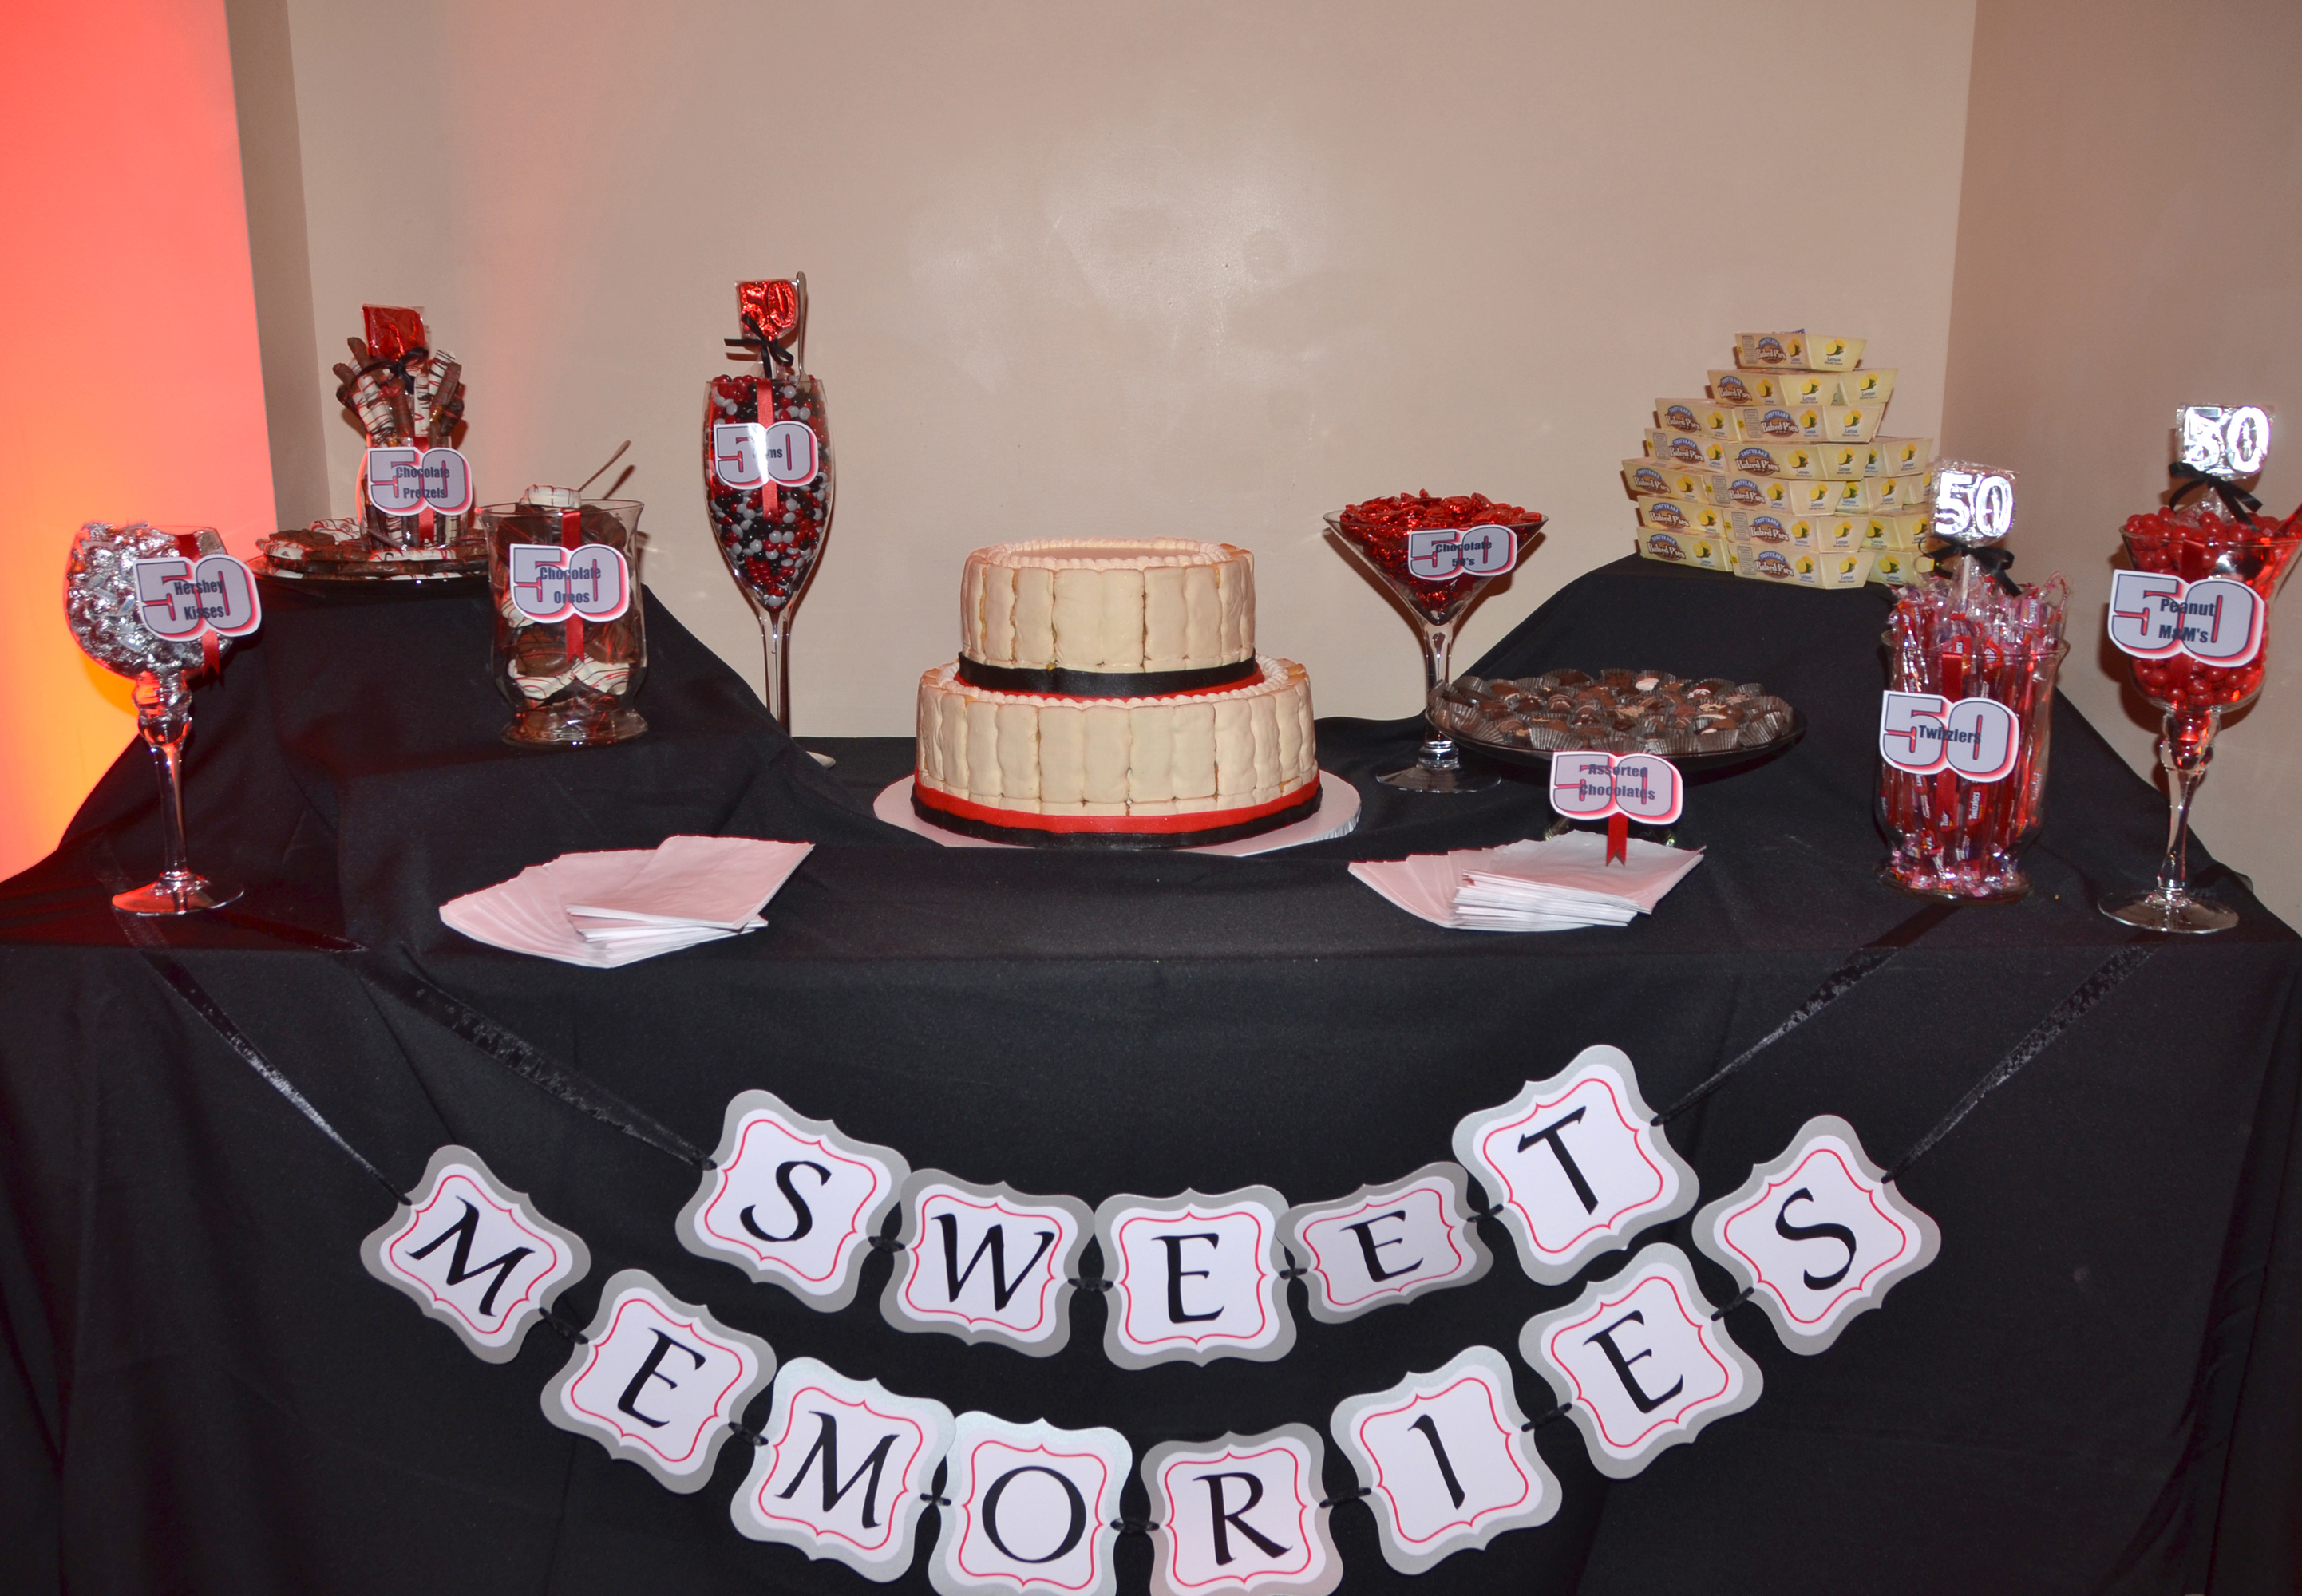 sweet memories table with custom Tastykake Krimpet cake and lemon pie tower (the guest of honoe loves Tastycakes)